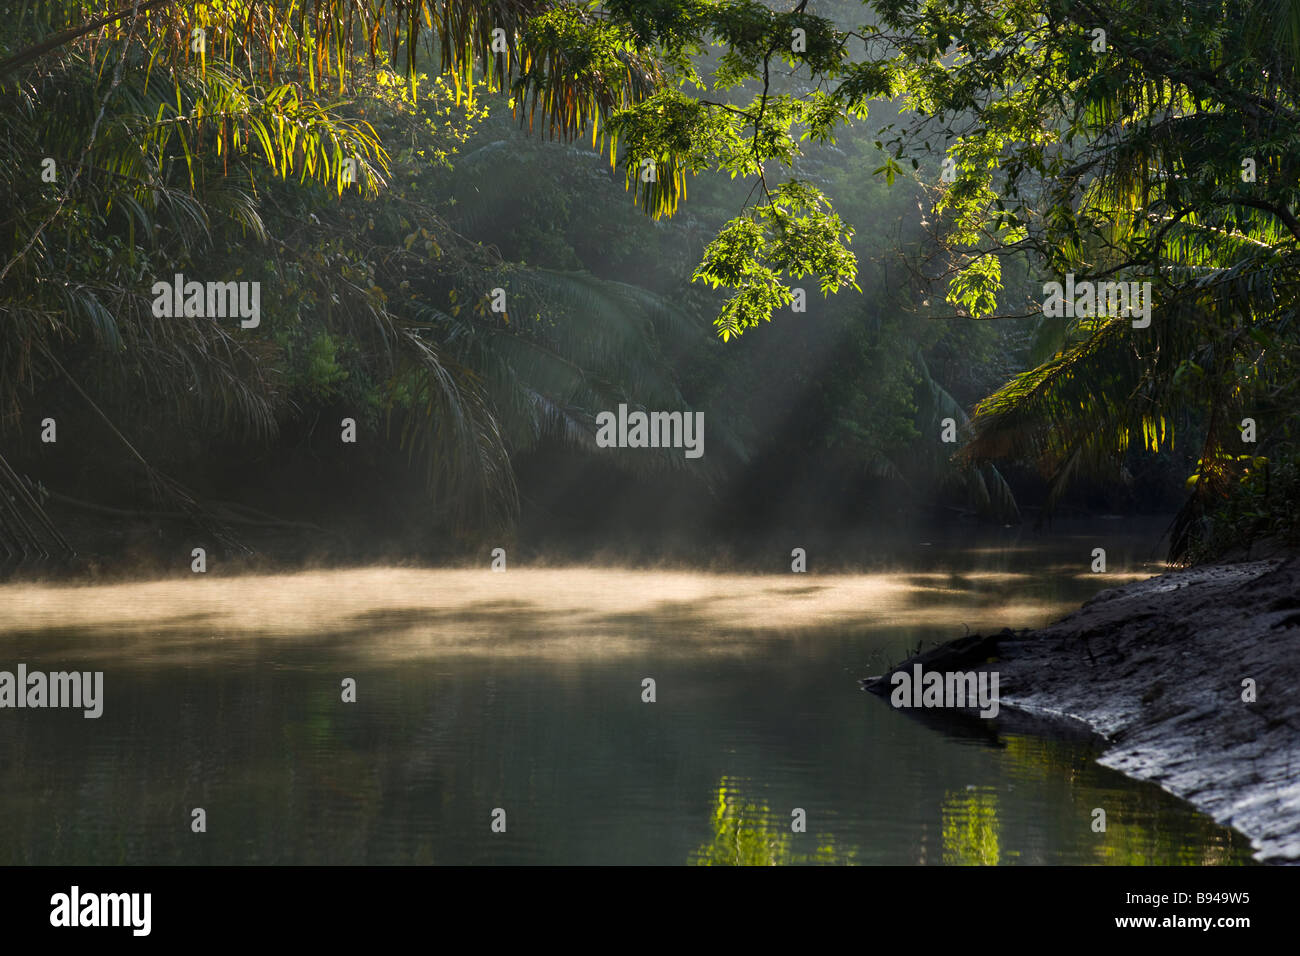 Sunlight shining through morning mist on the Chocuaco river in the rainforest of the Osa Peninsula, Costa Rica. - Stock Image